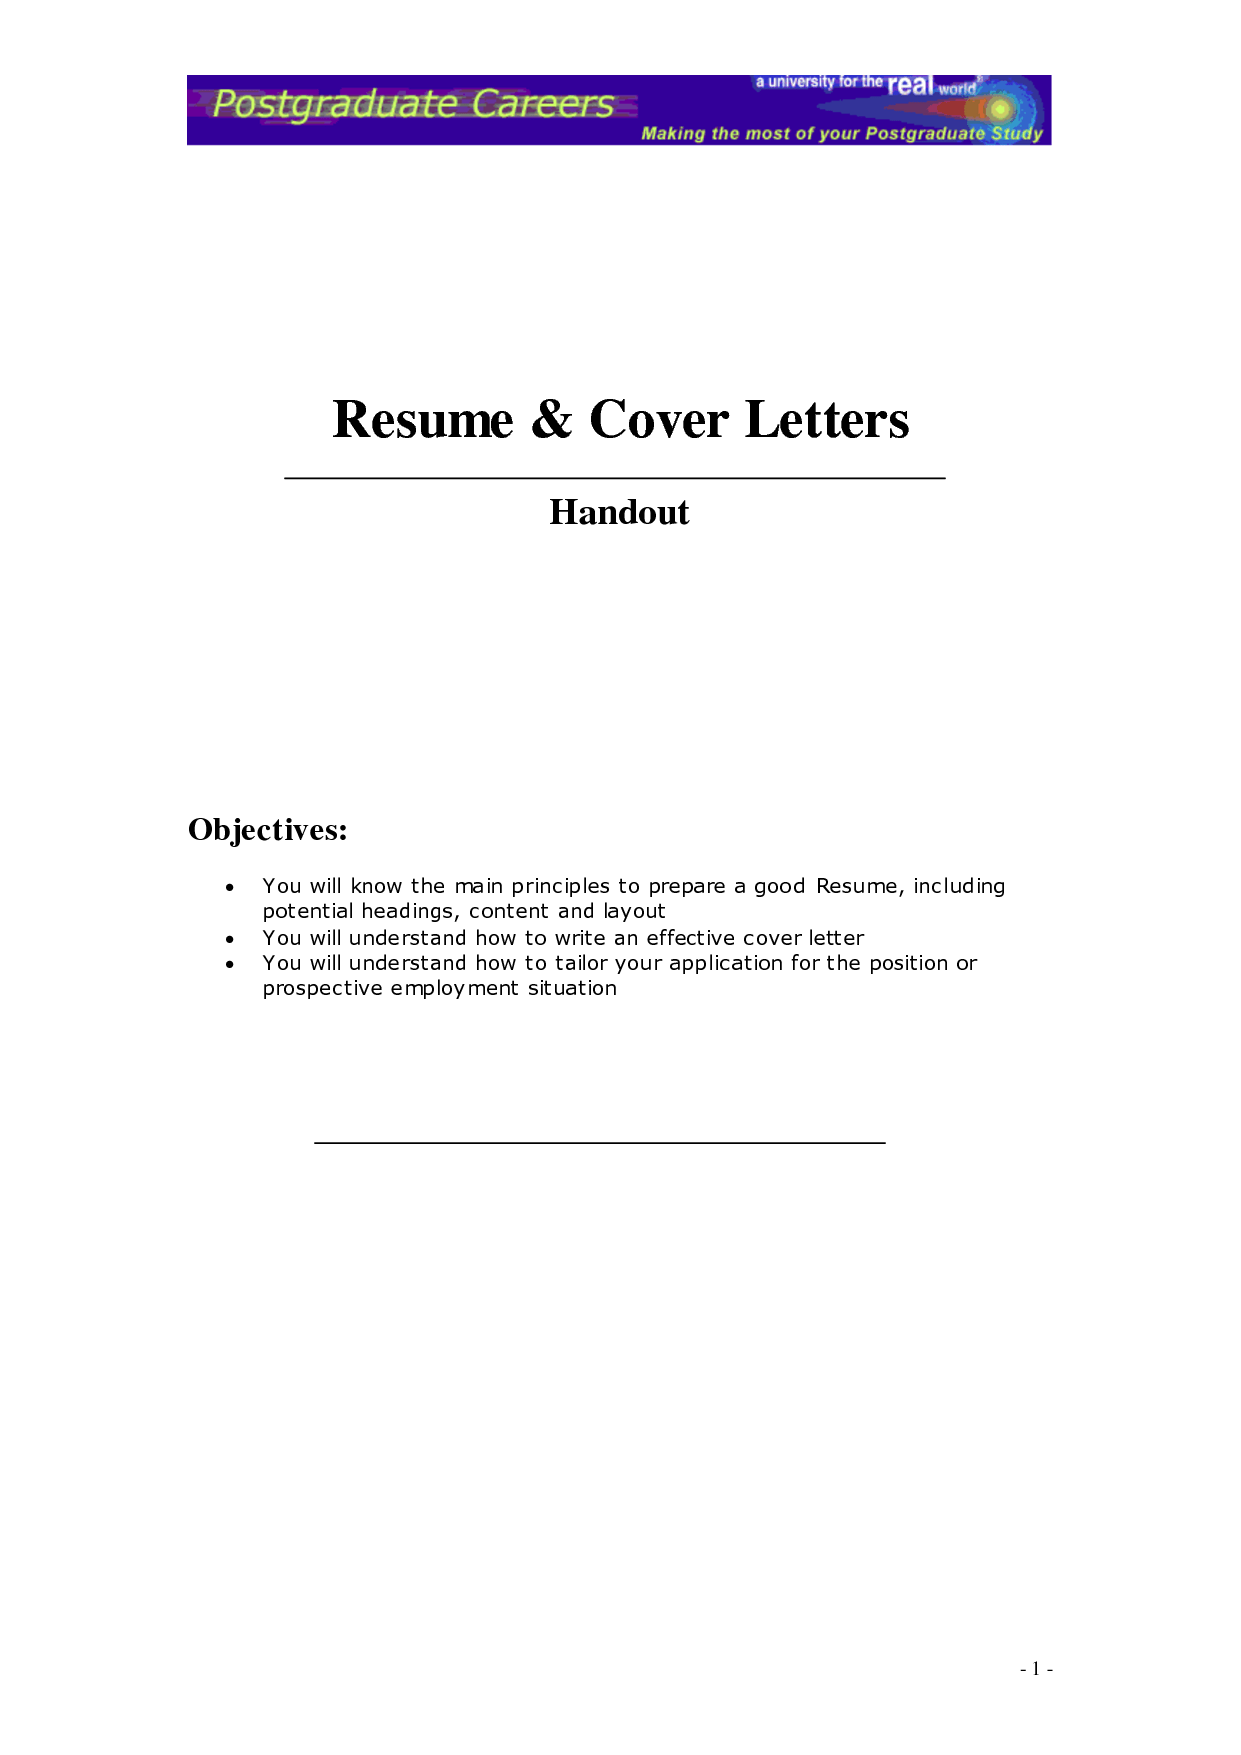 cover letter job embassy service resume cover letter job embassy schengen visa sample cover letter and letter writing cover letter writing service